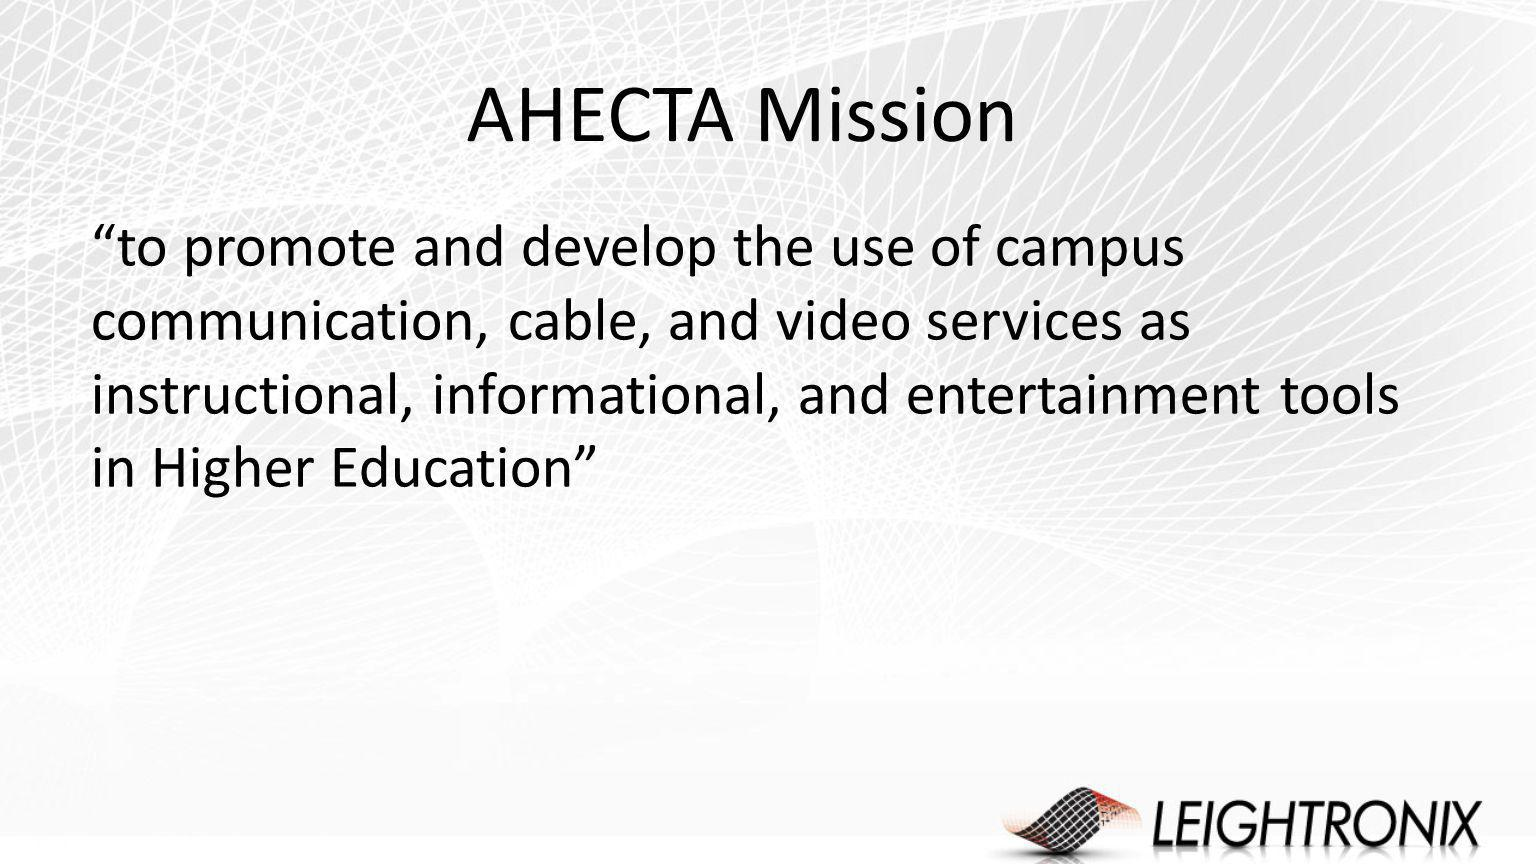 AHECTA Mission to promote and develop the use of campus communication, cable, and video services as instructional, informational, and entertainment tools in Higher Education